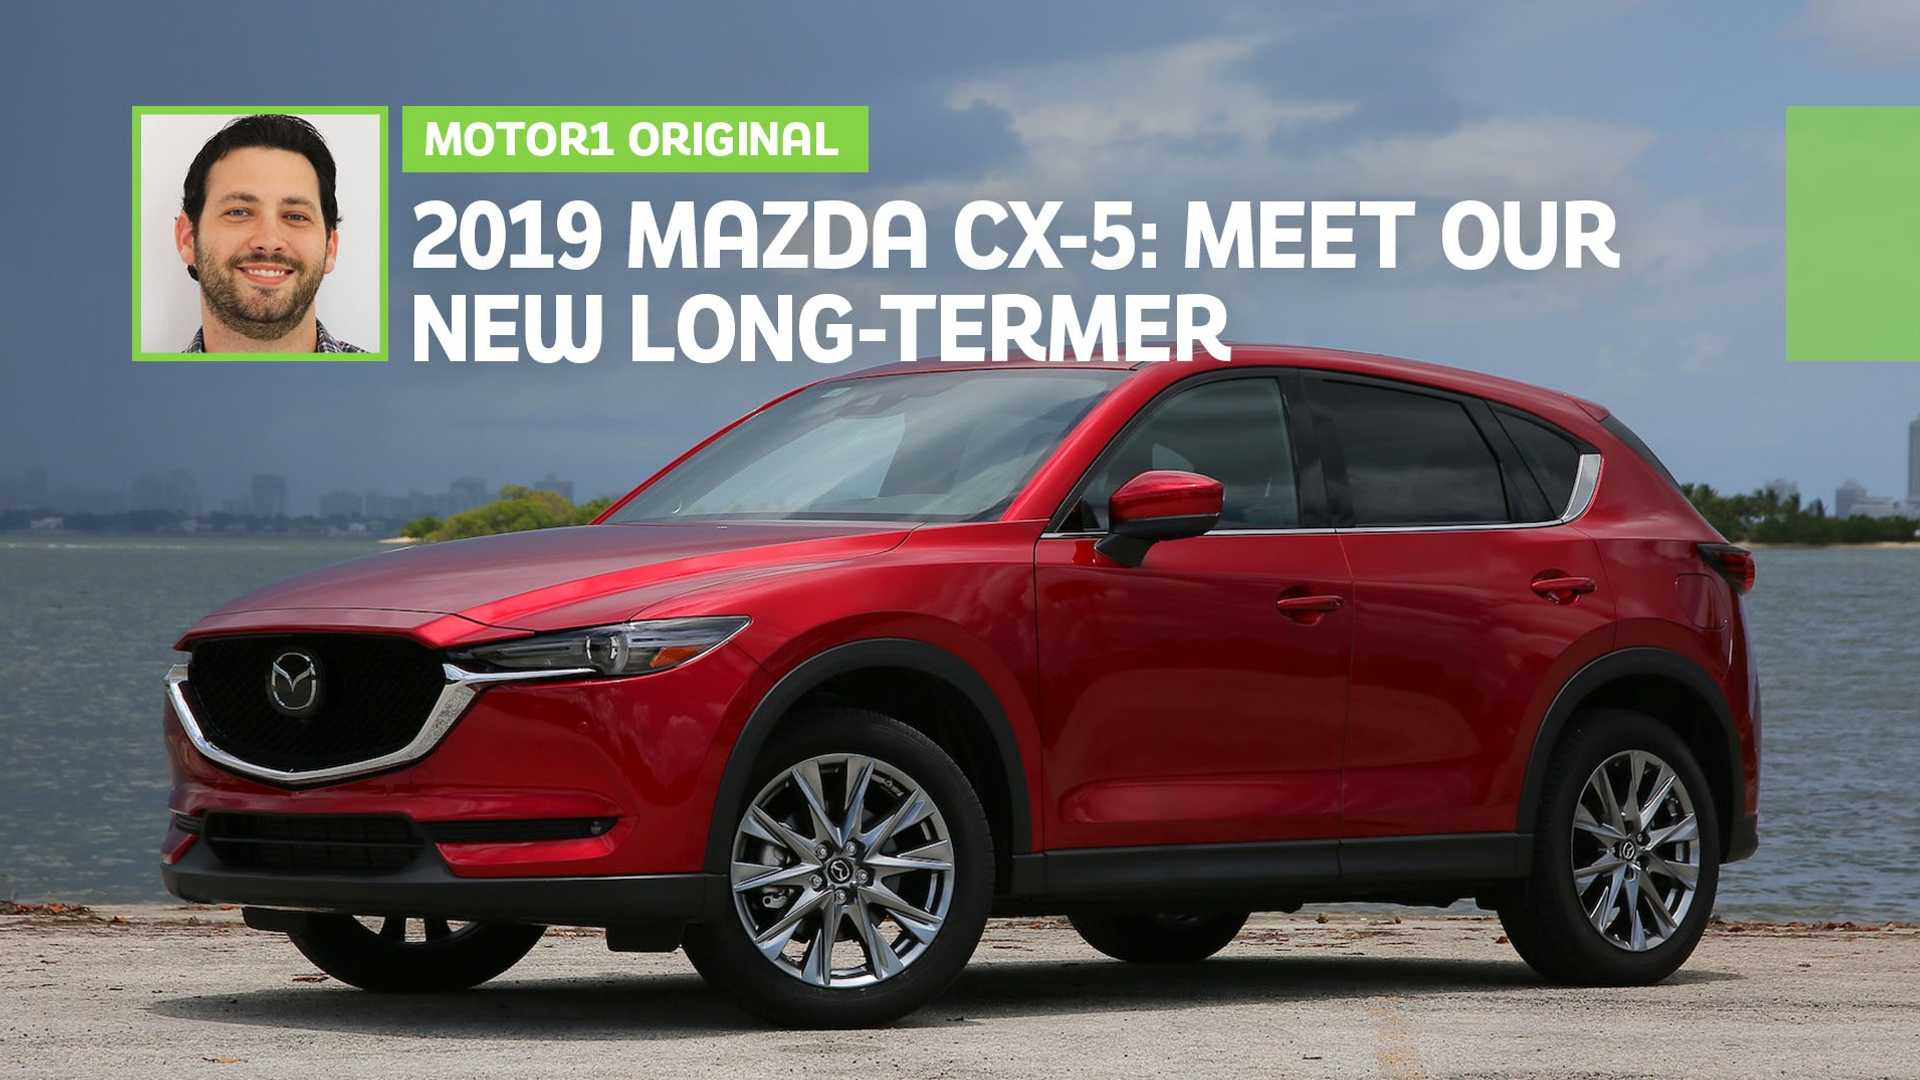 2019 Mazda CX-5 Signature: Our Latest Long-Termer Goes Turbo